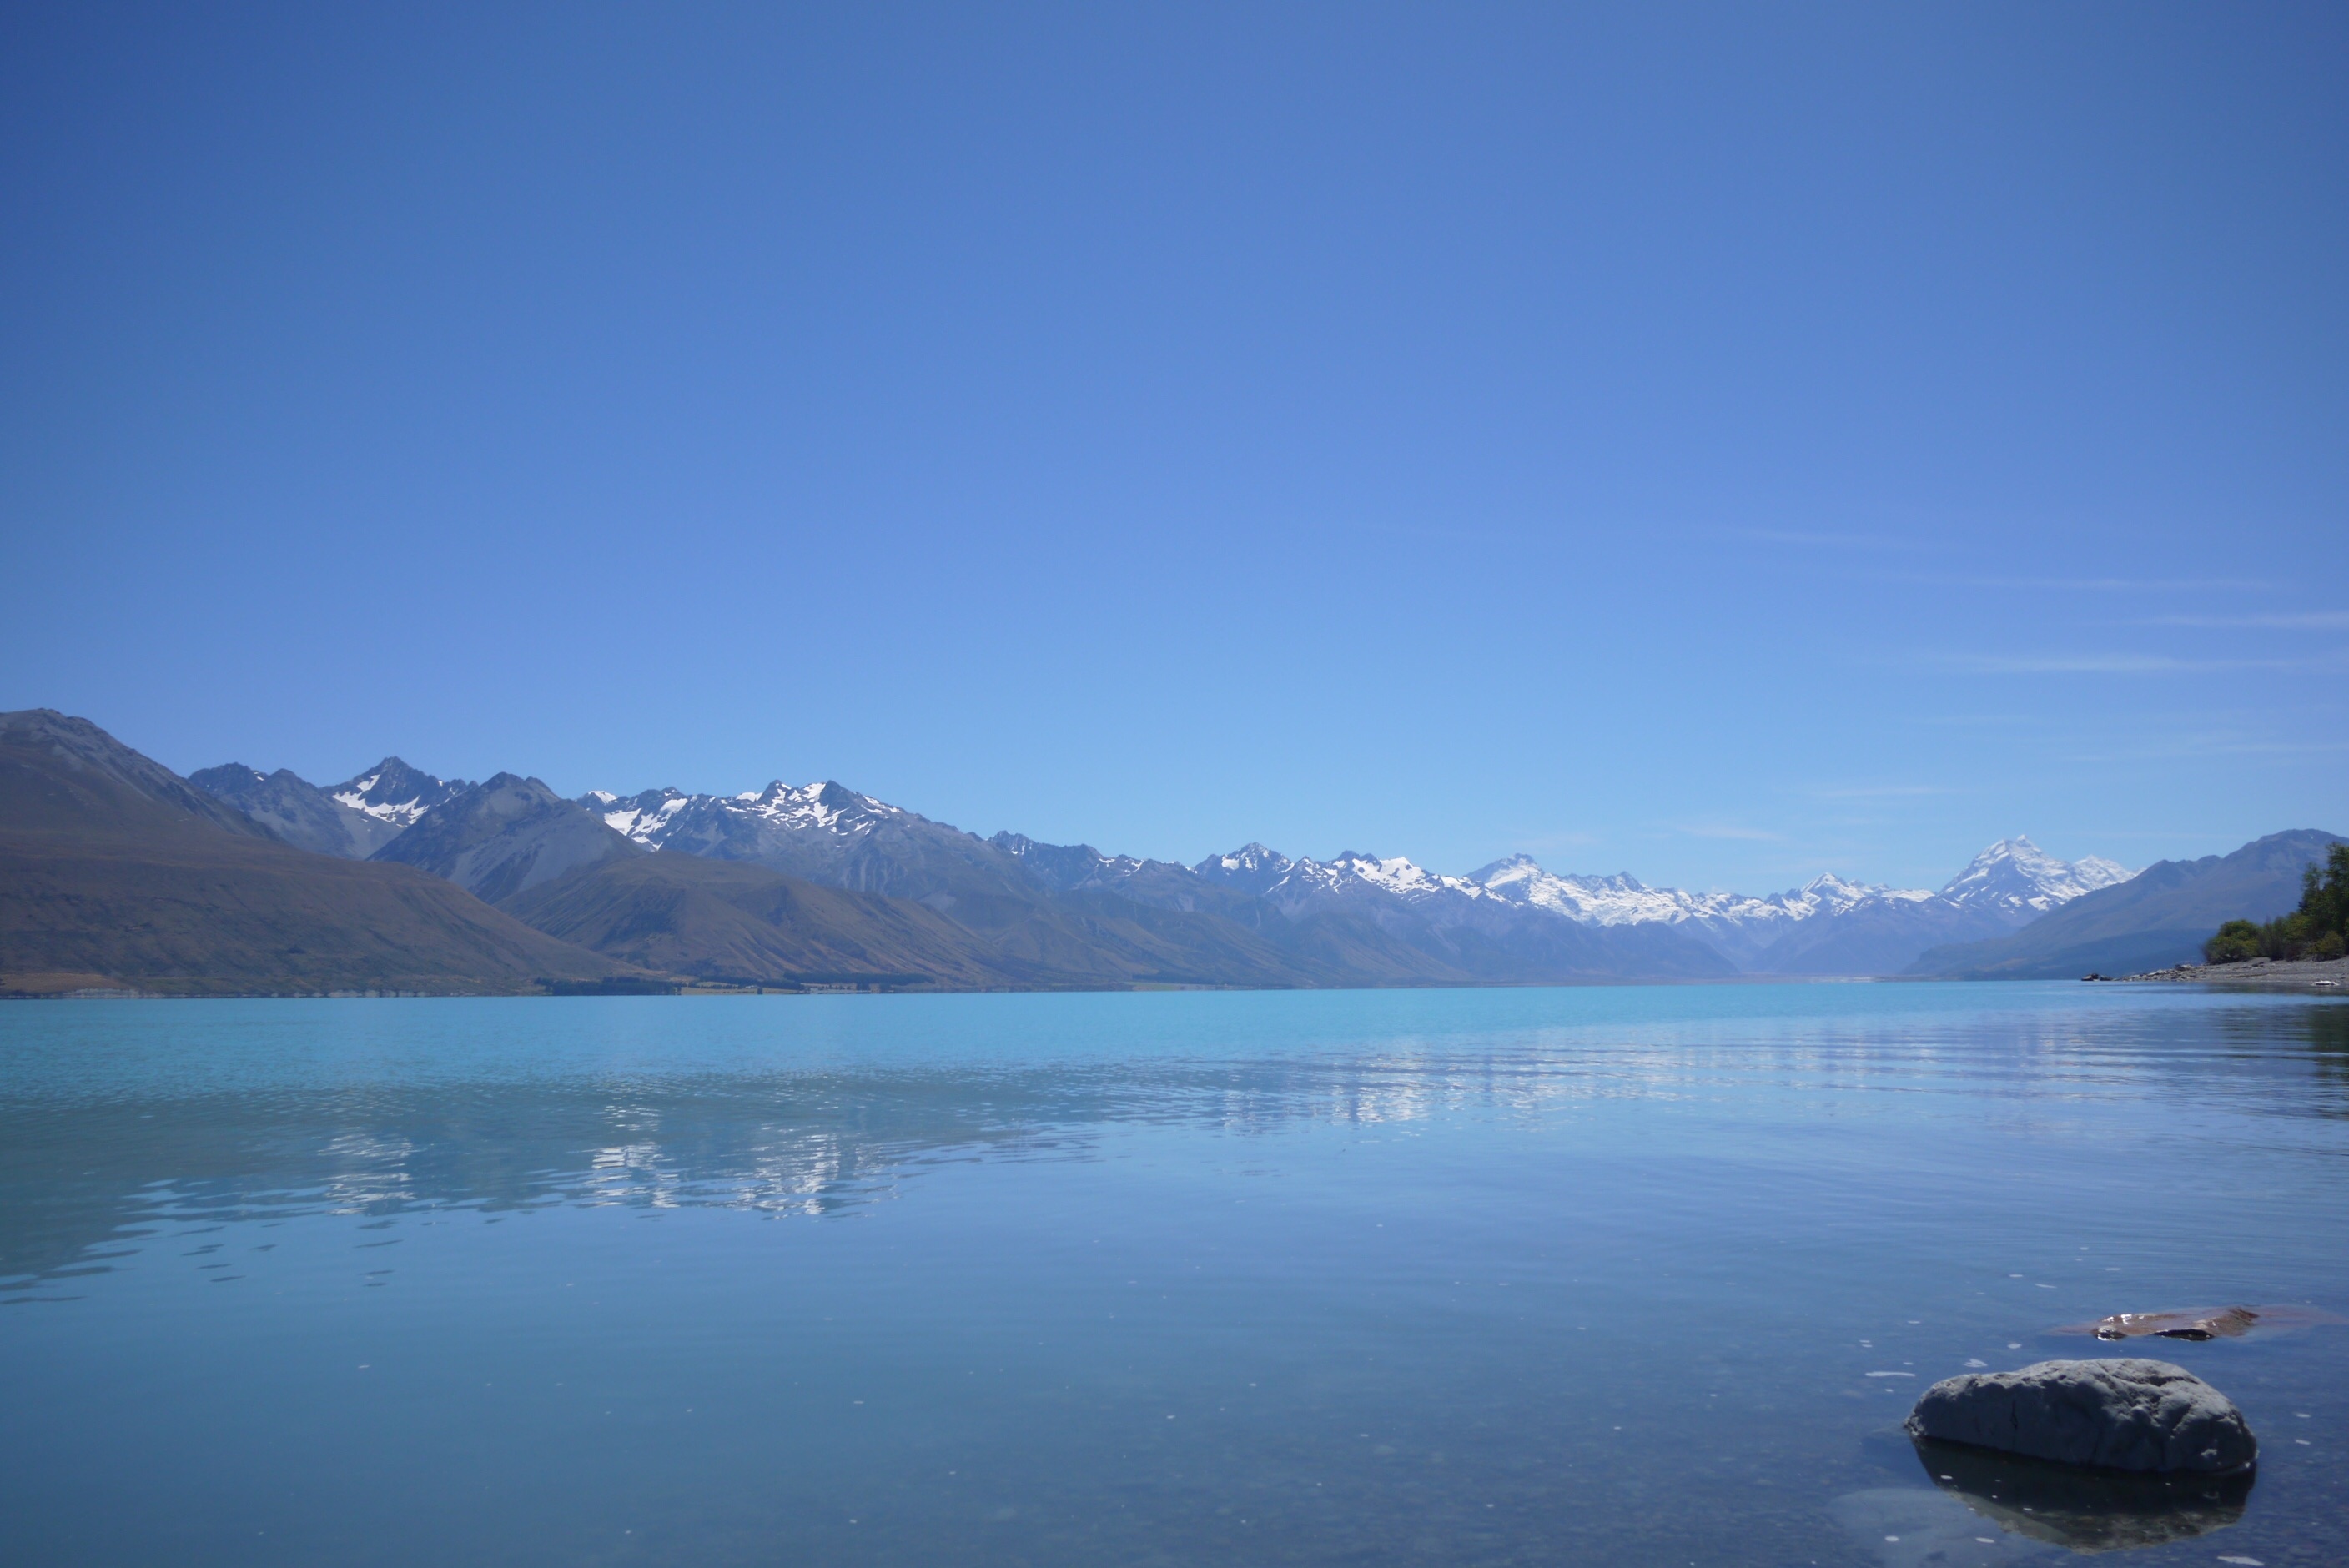 Lake Pukaki - not a bad place to run a marathon